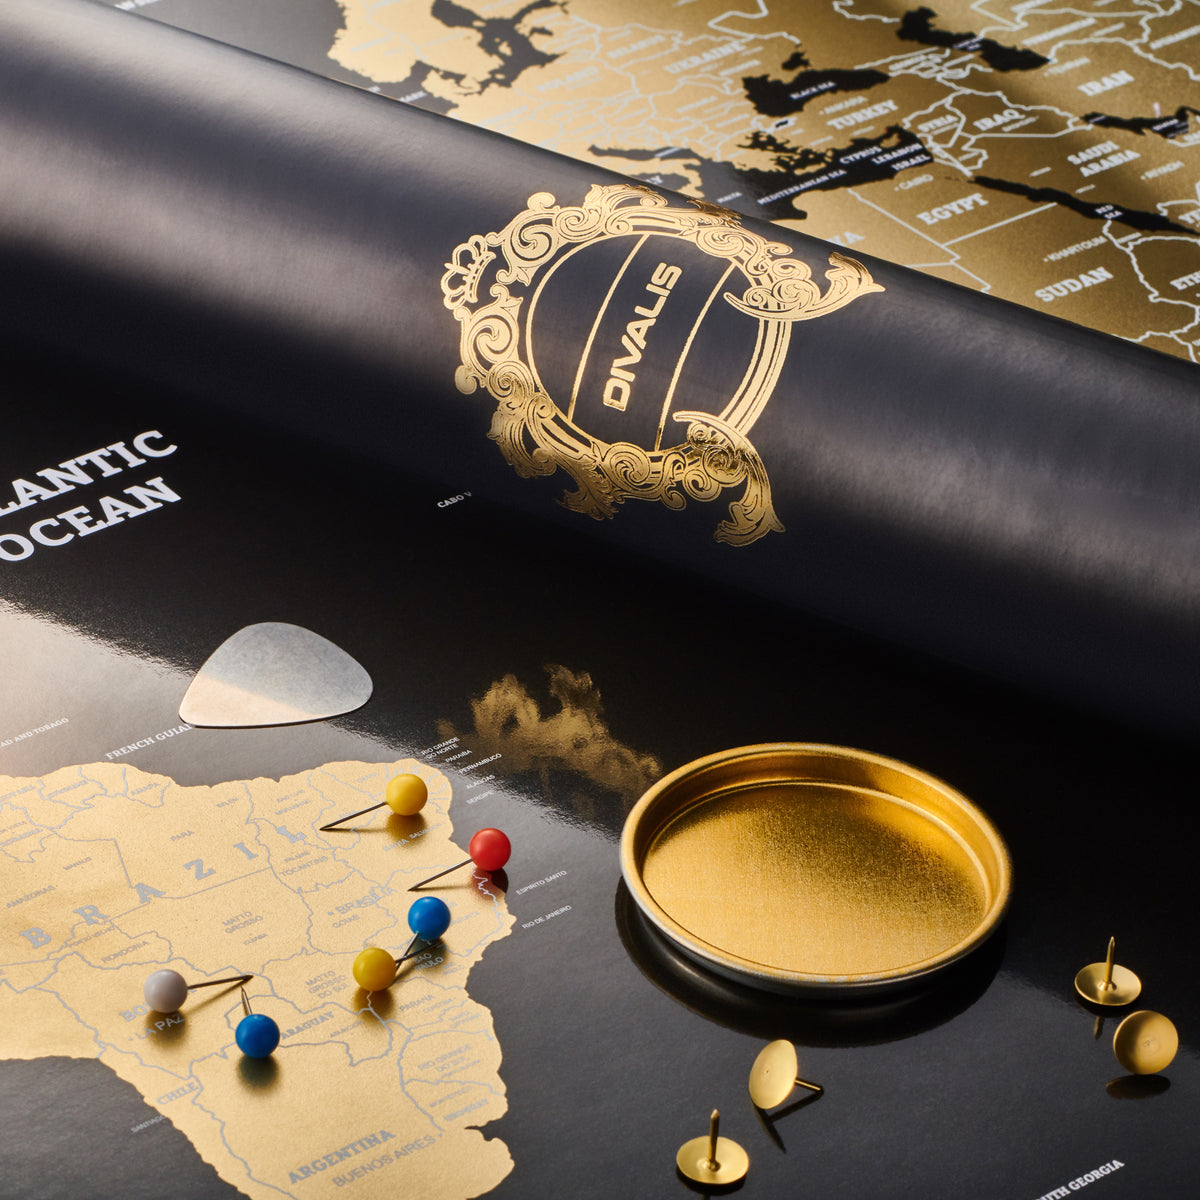 Buy scratch map, buy travel map, large scratch map, gold scratch map, luxury scratch map, best travel map, globetrotter map, world map